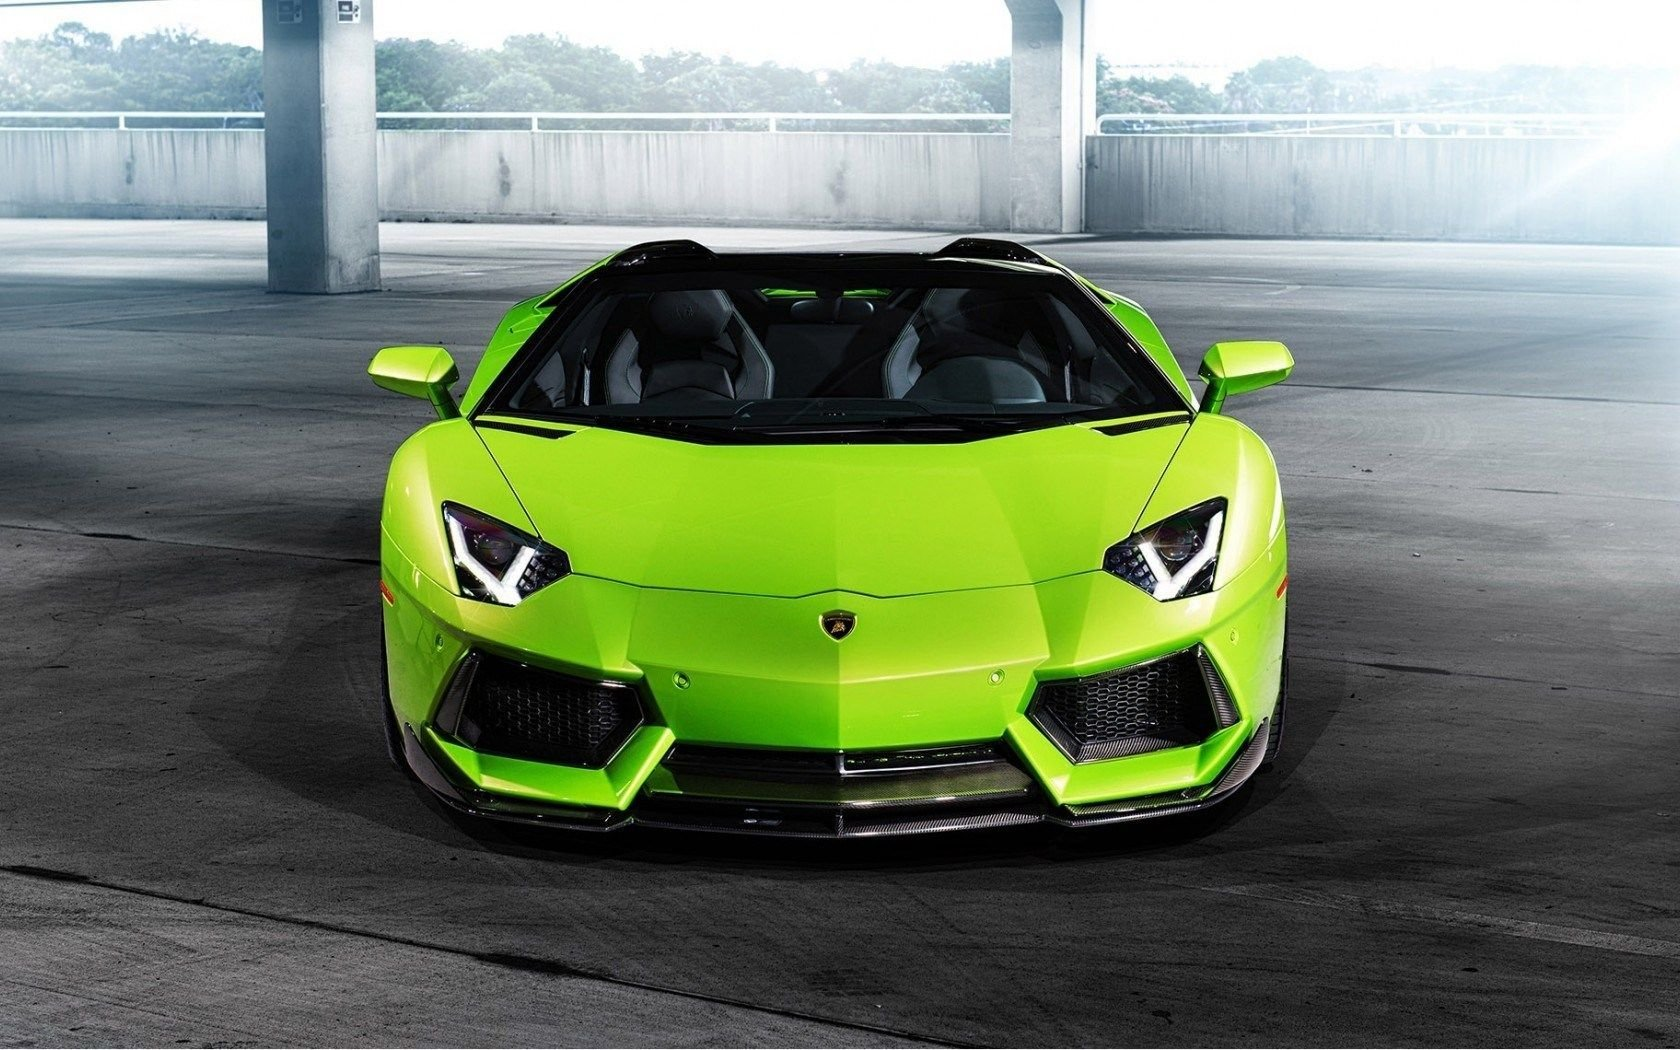 New Lamborghini Green Car Hd Wallpaper Expensive Cars Hd On This Month